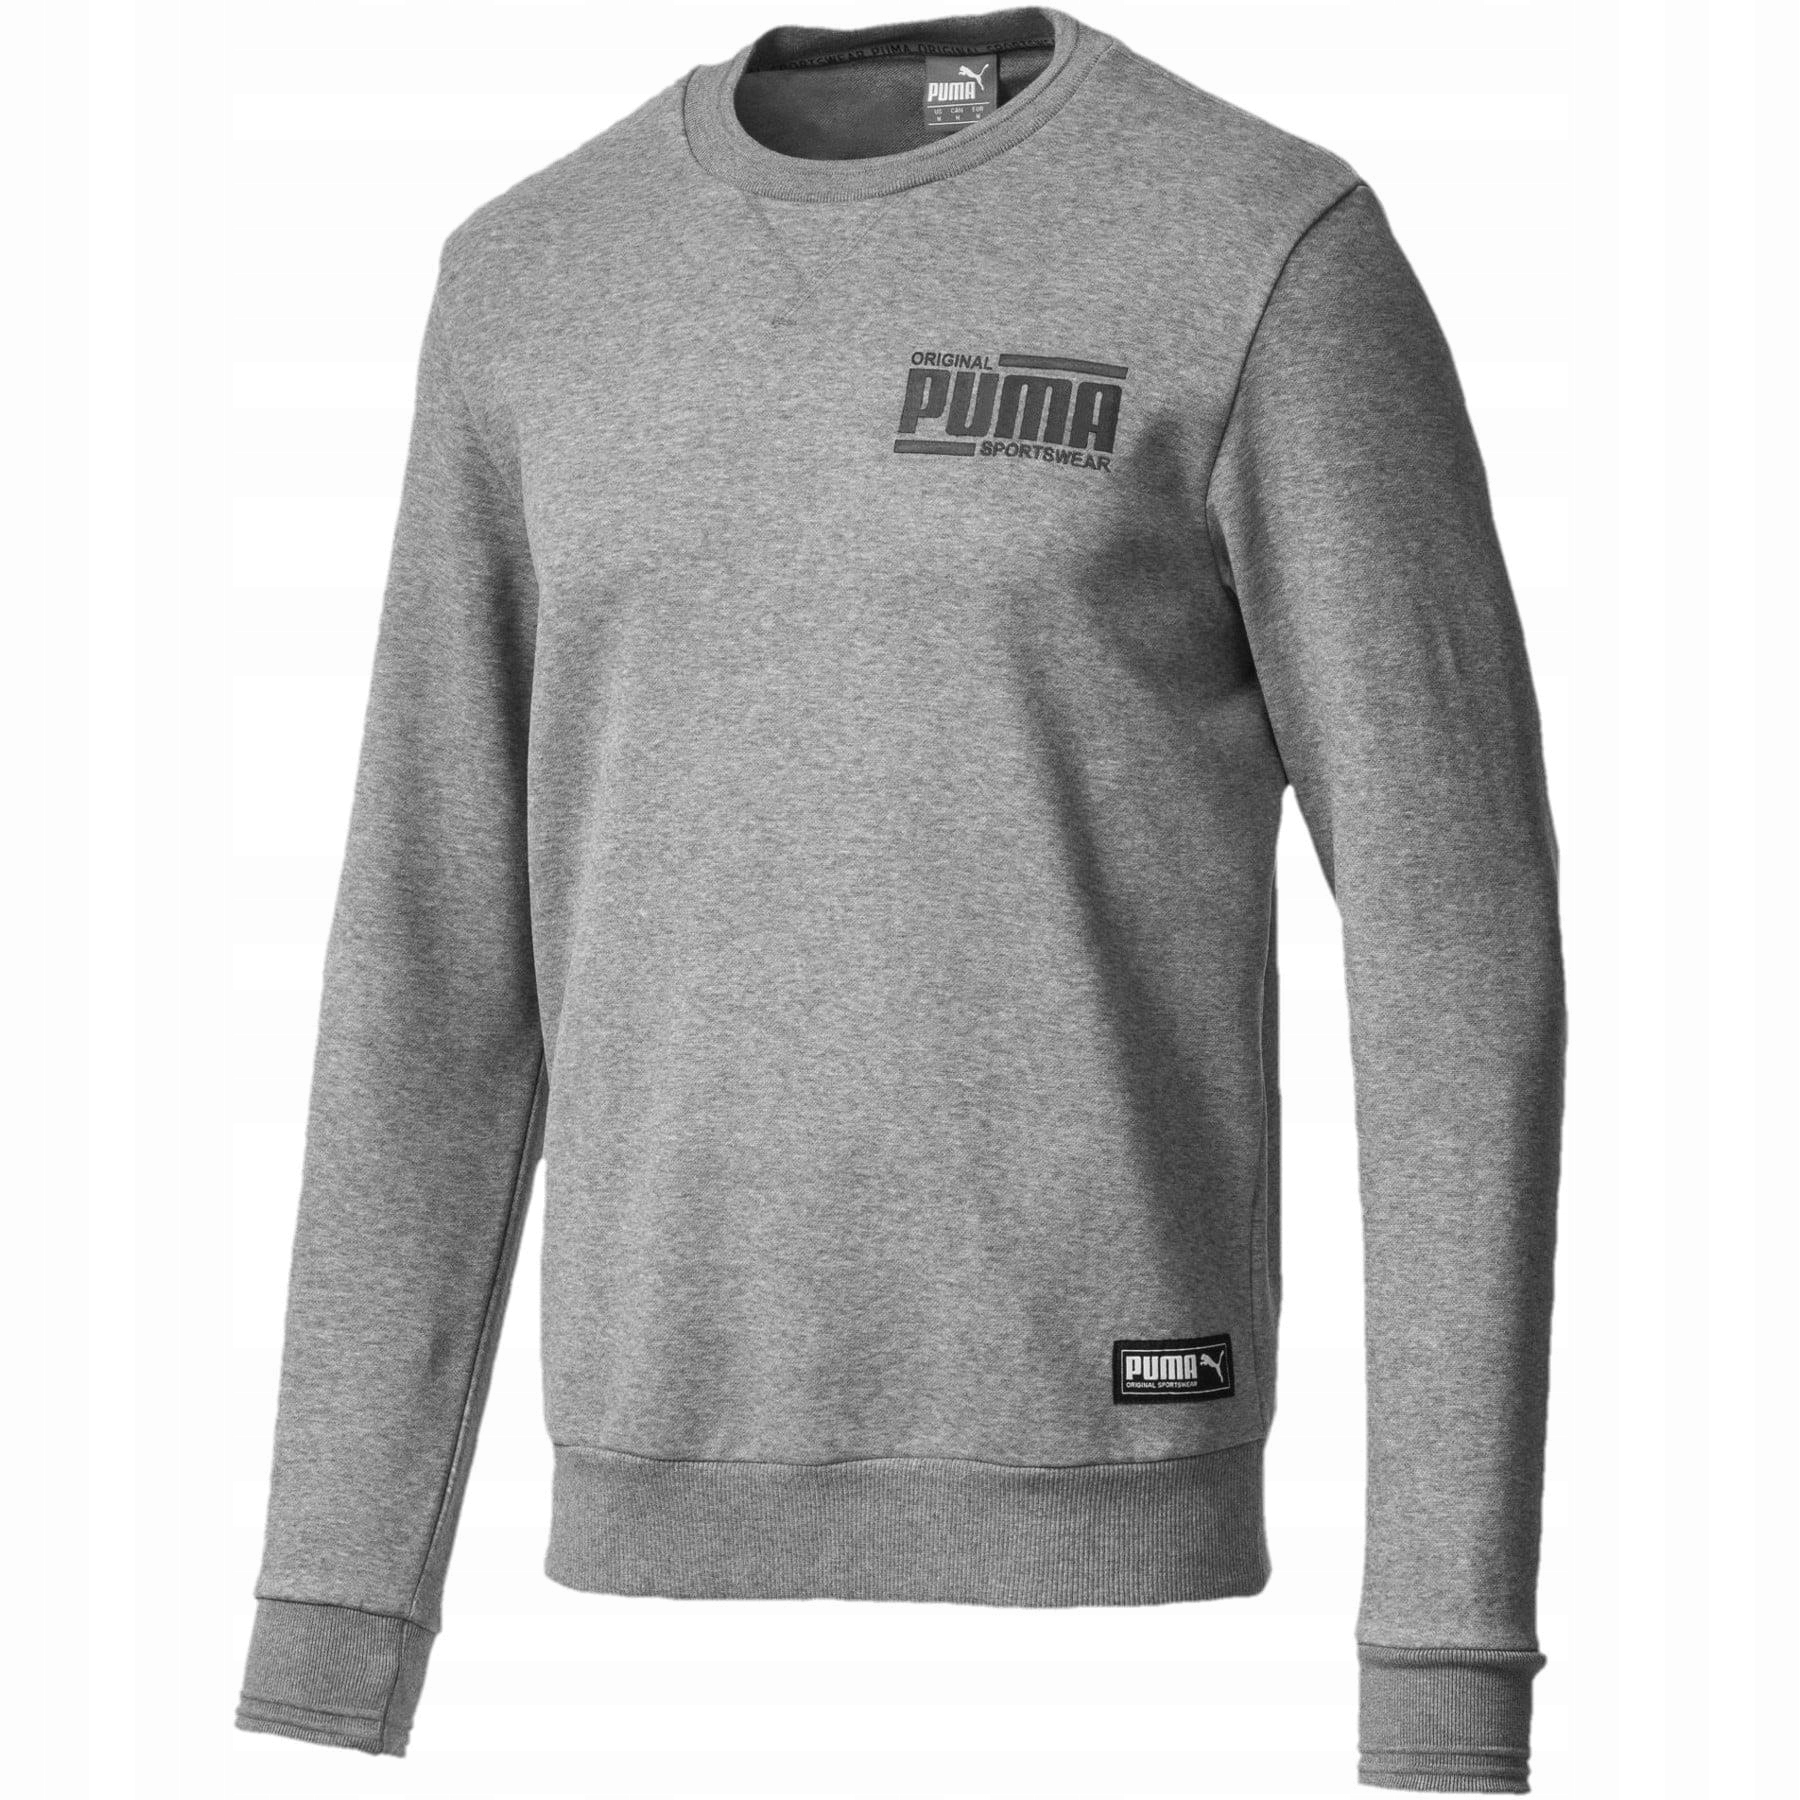 BLUZKA PUMA ATHLETICS 85231103 r XL